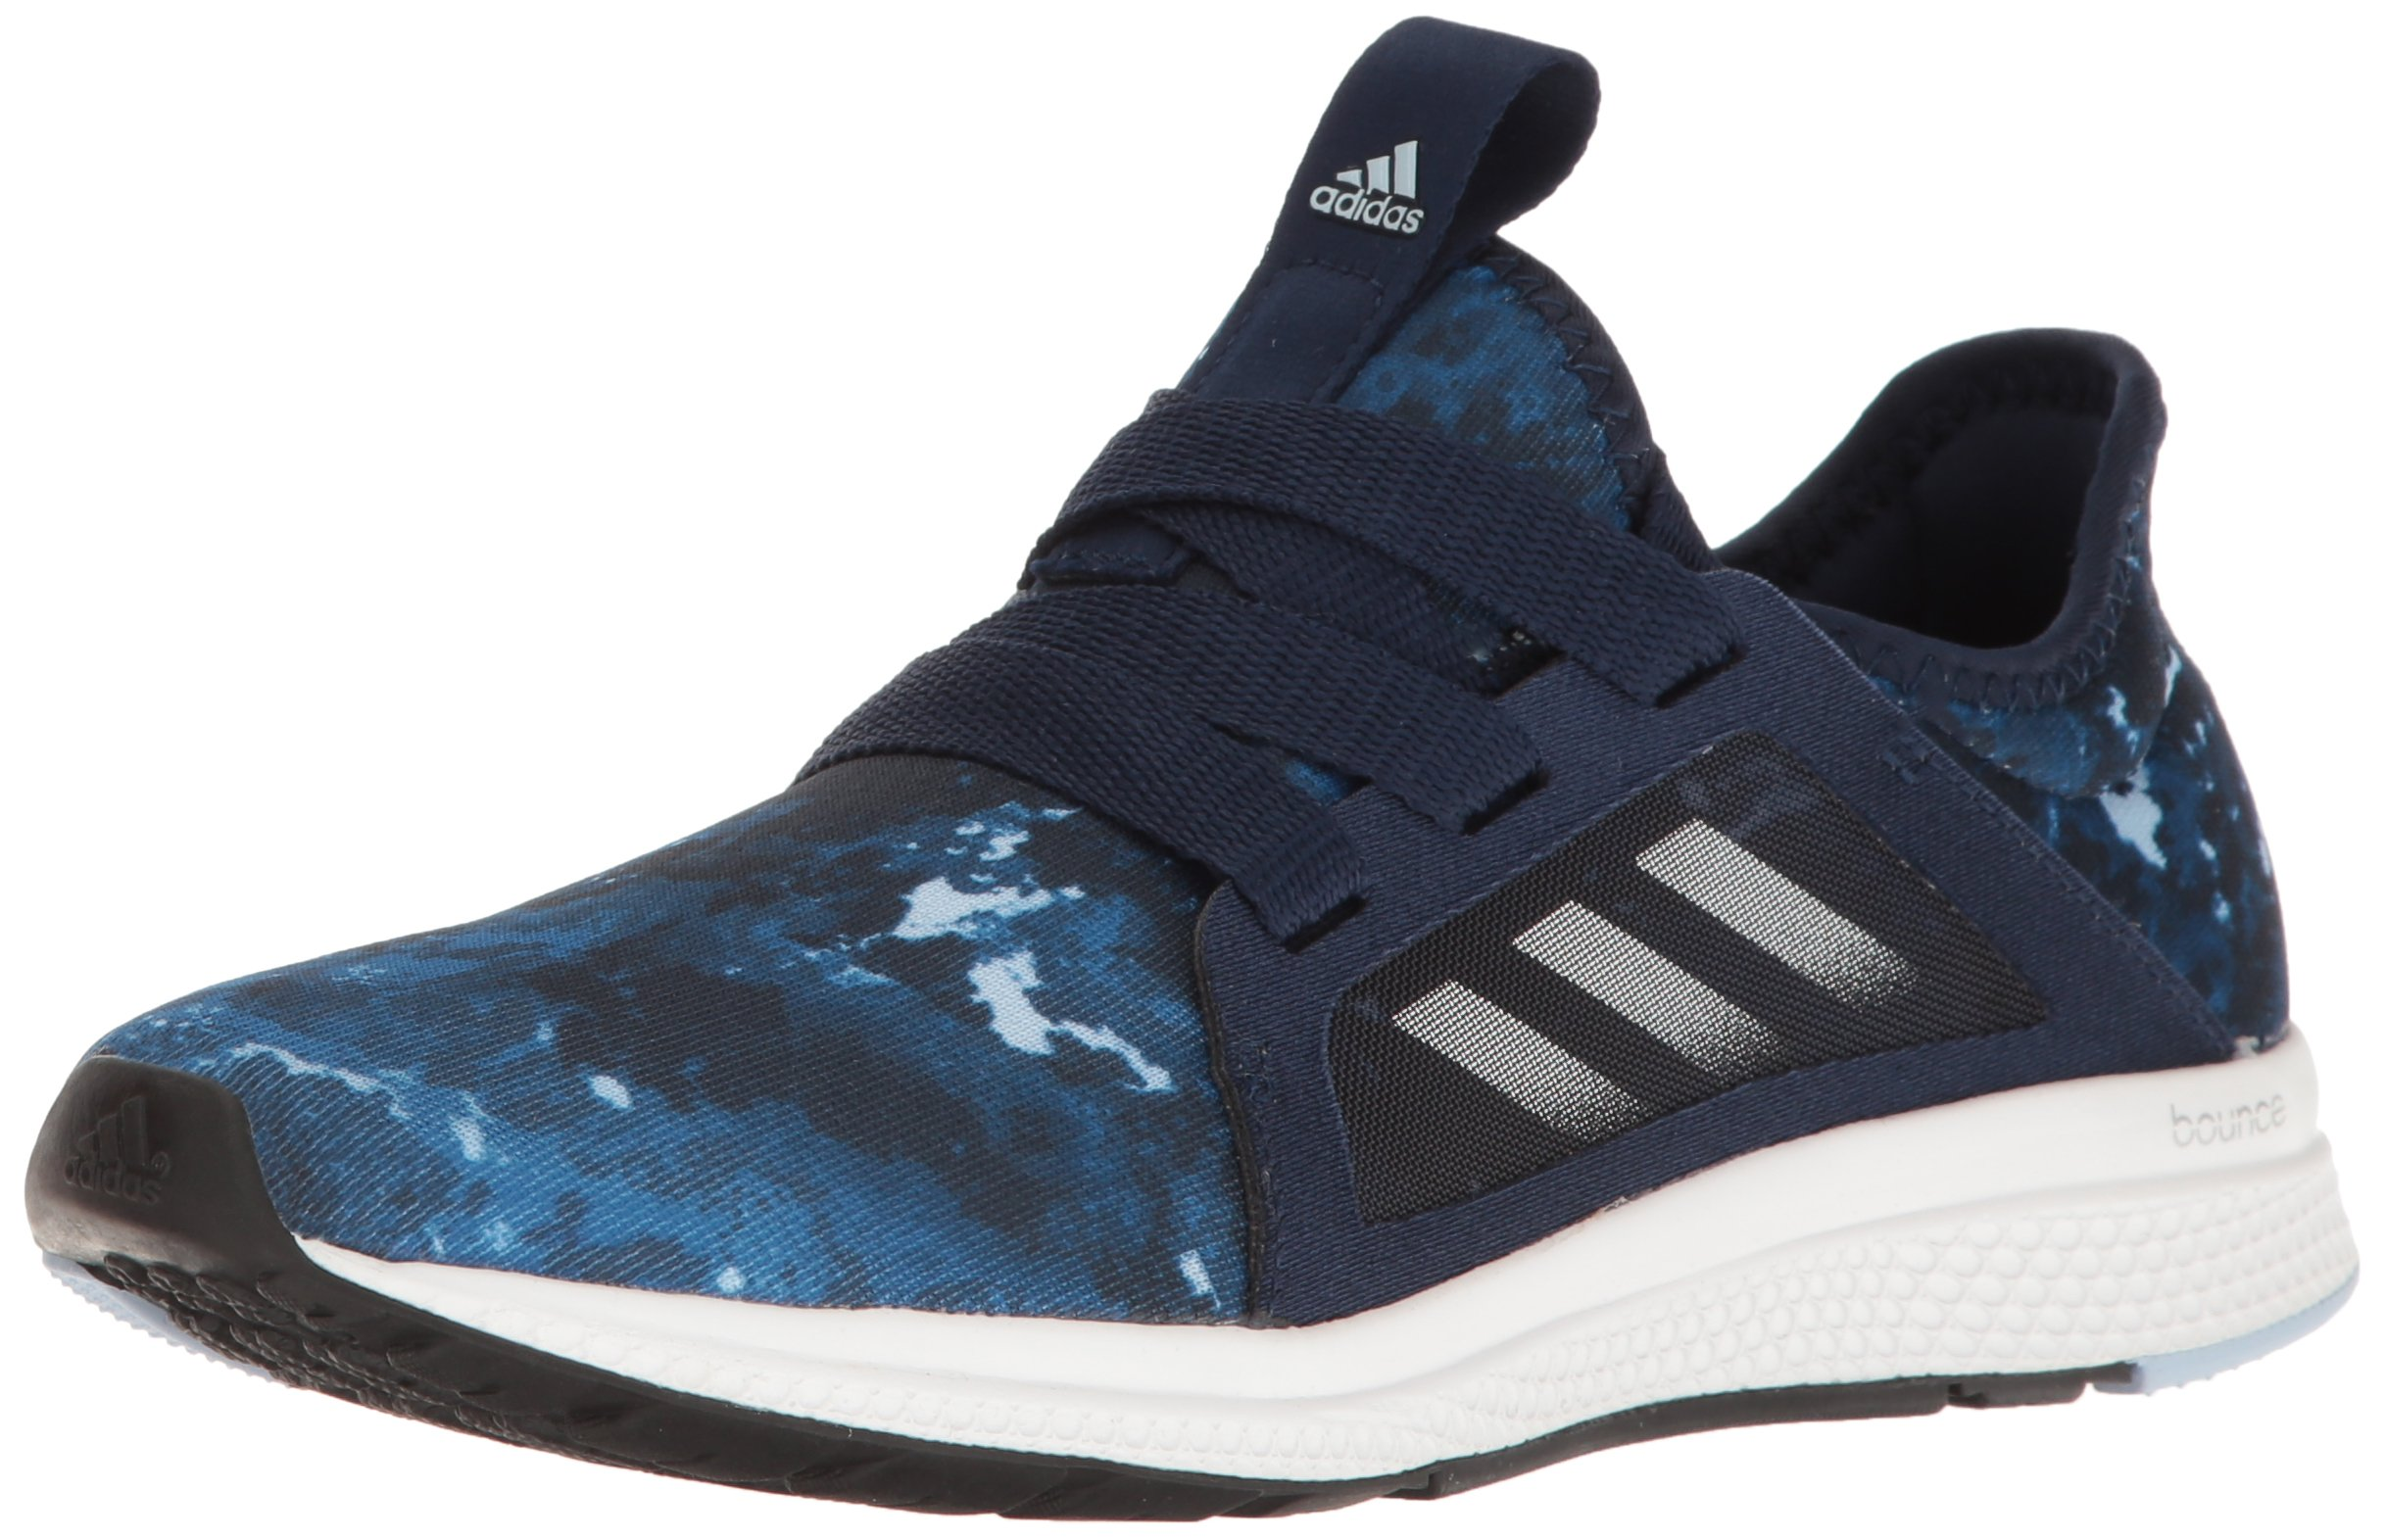 7feacb32c9b7 Get Quotations · adidas Originals Women s Cloudfoam Advantage Sneakers